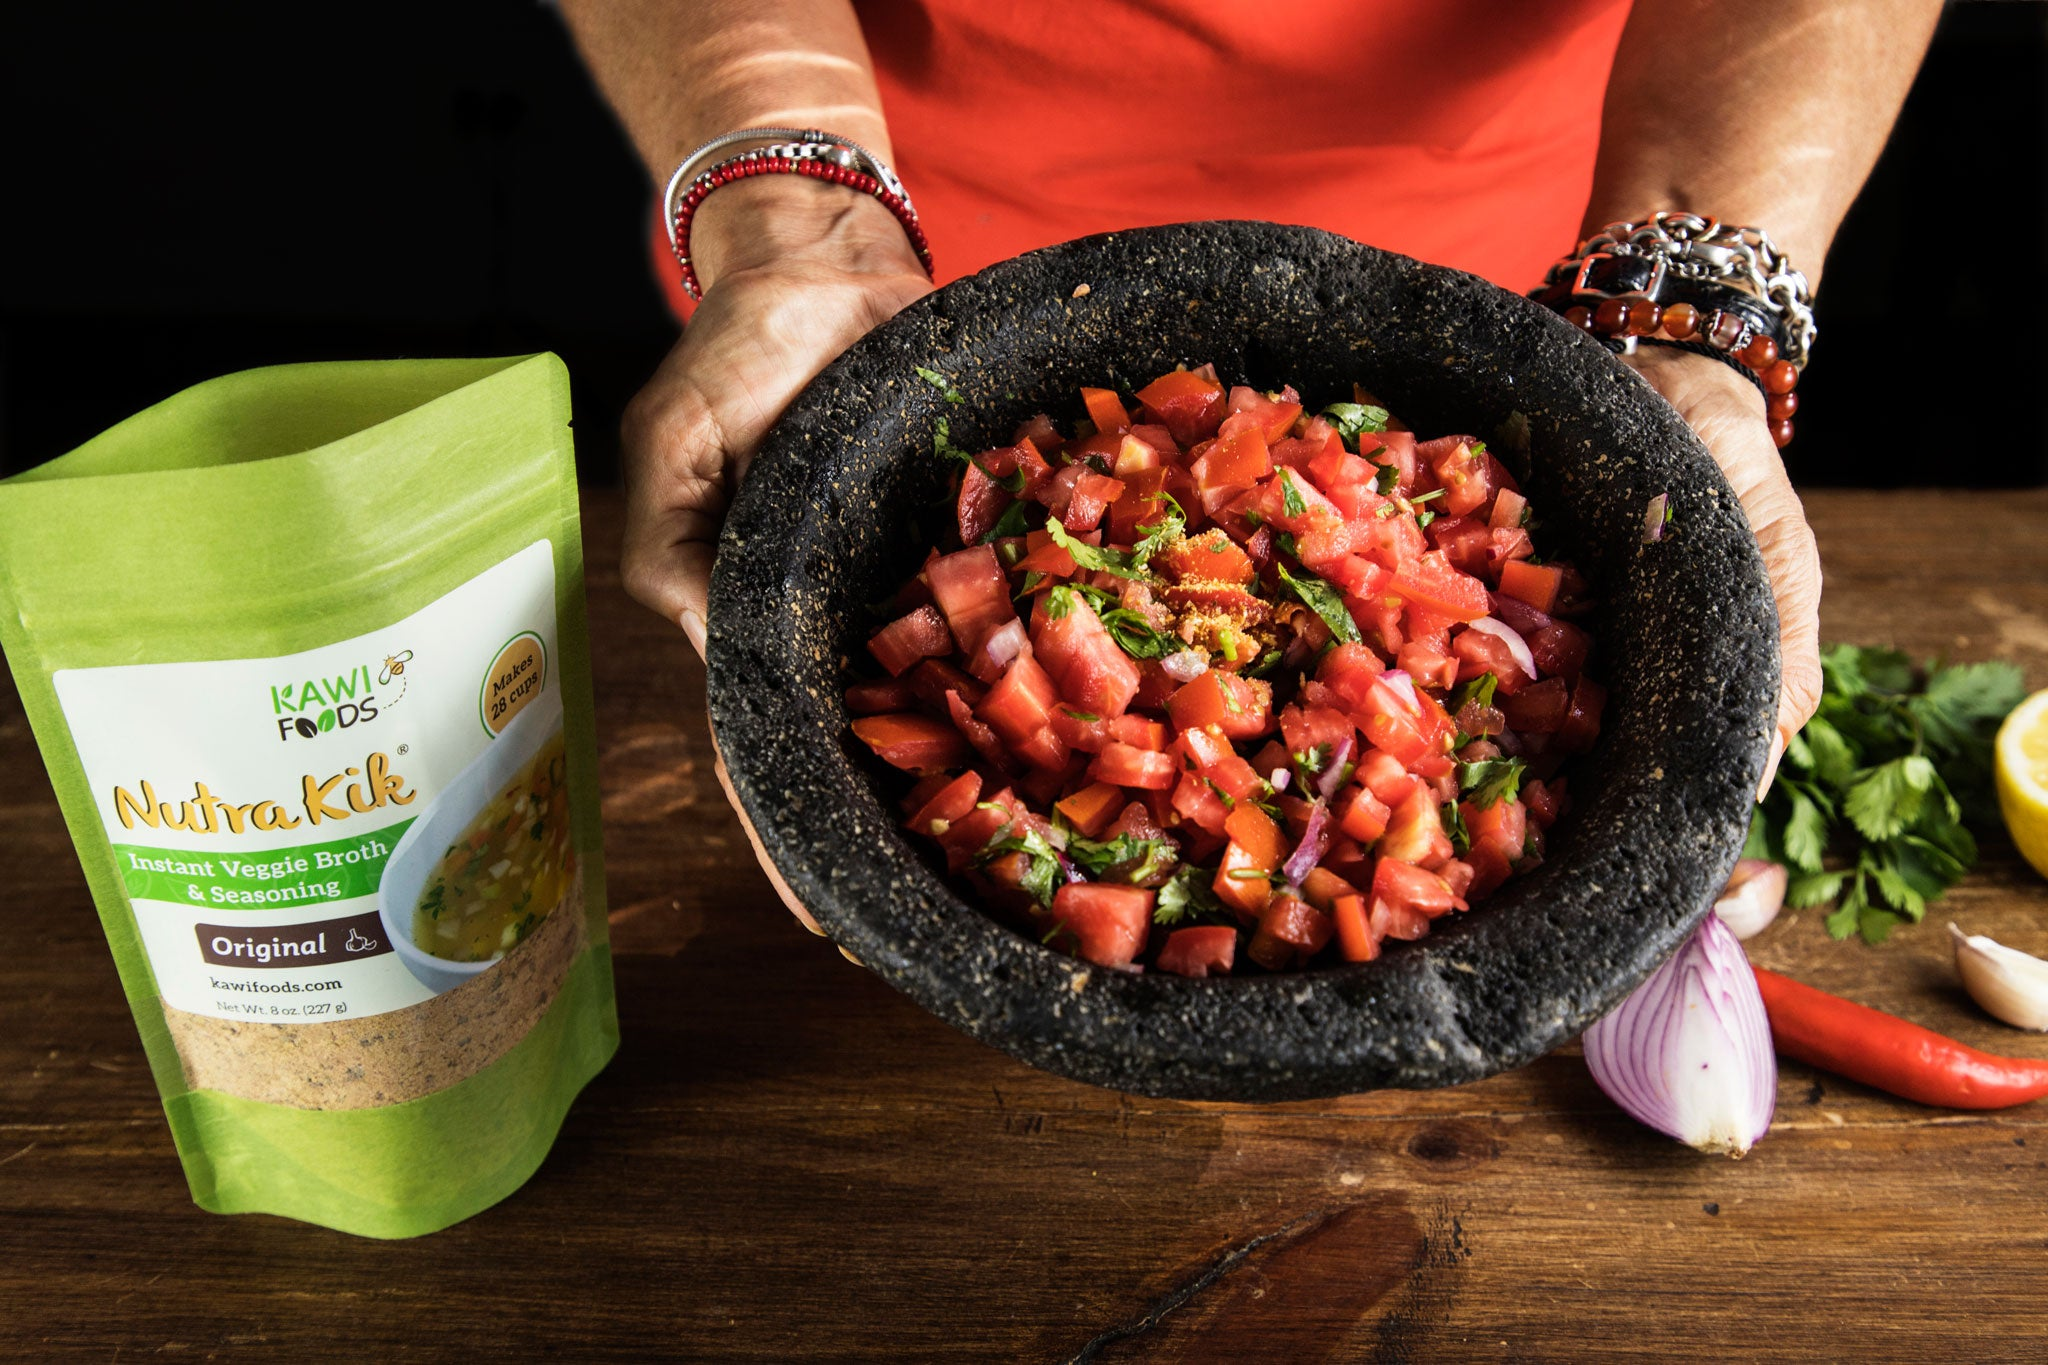 Pico de gallo, kawifoods, recipes, natural